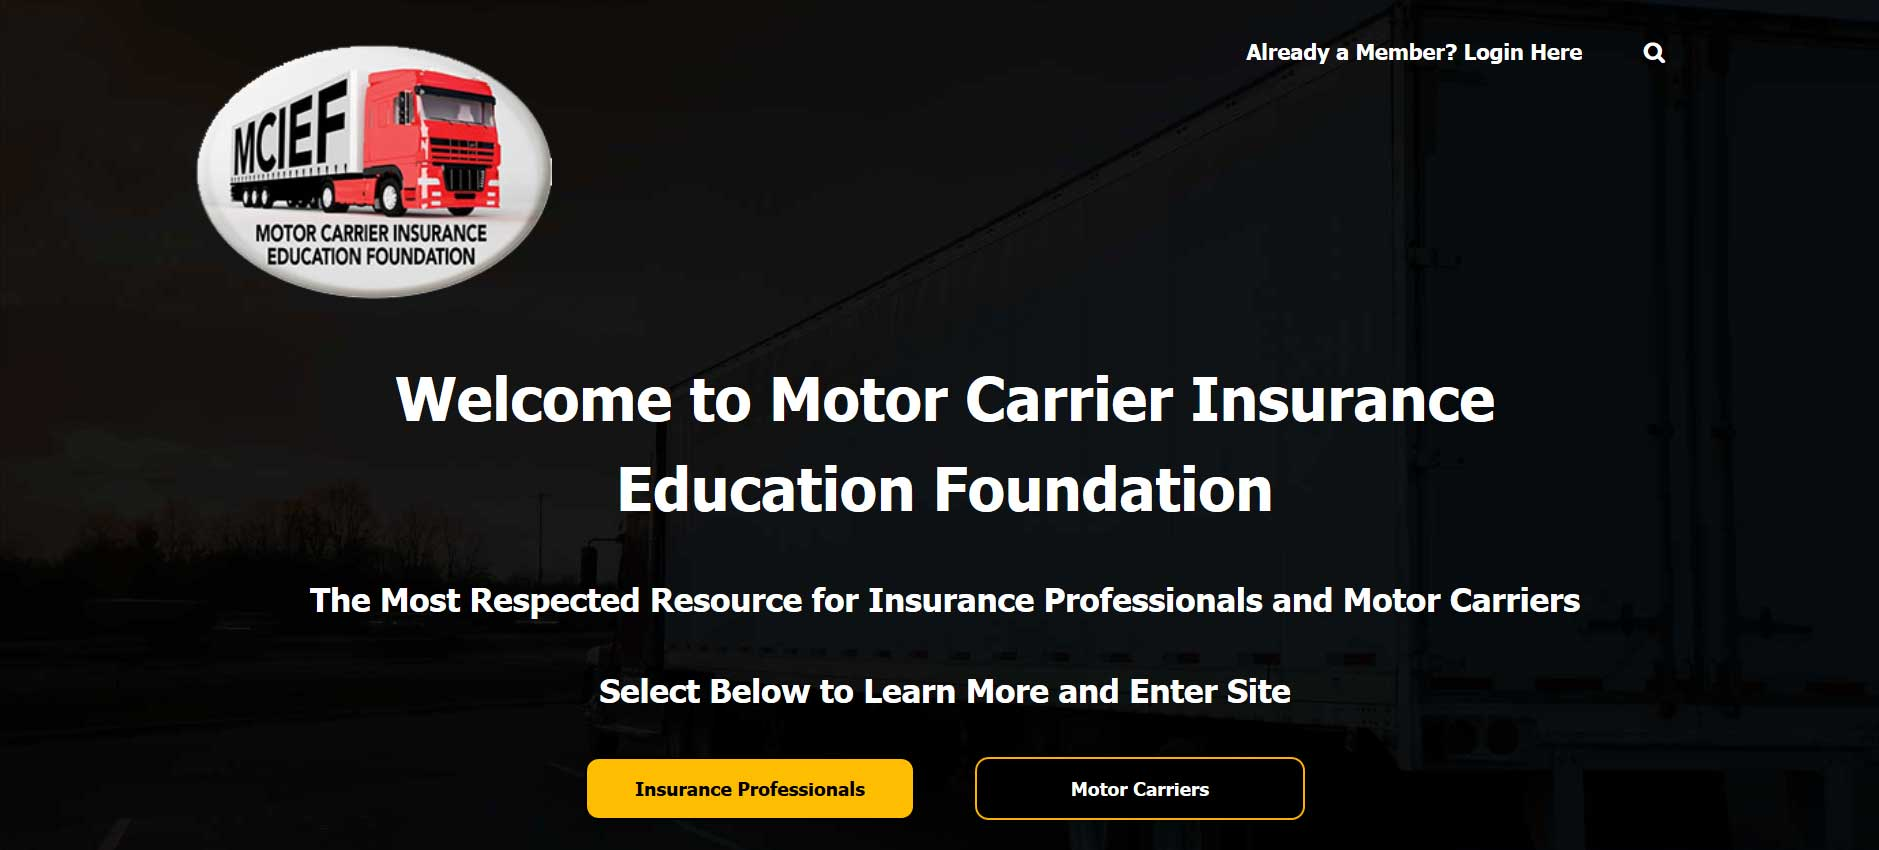 Motor Carrier Insurance Education Foundation Website Screenshot